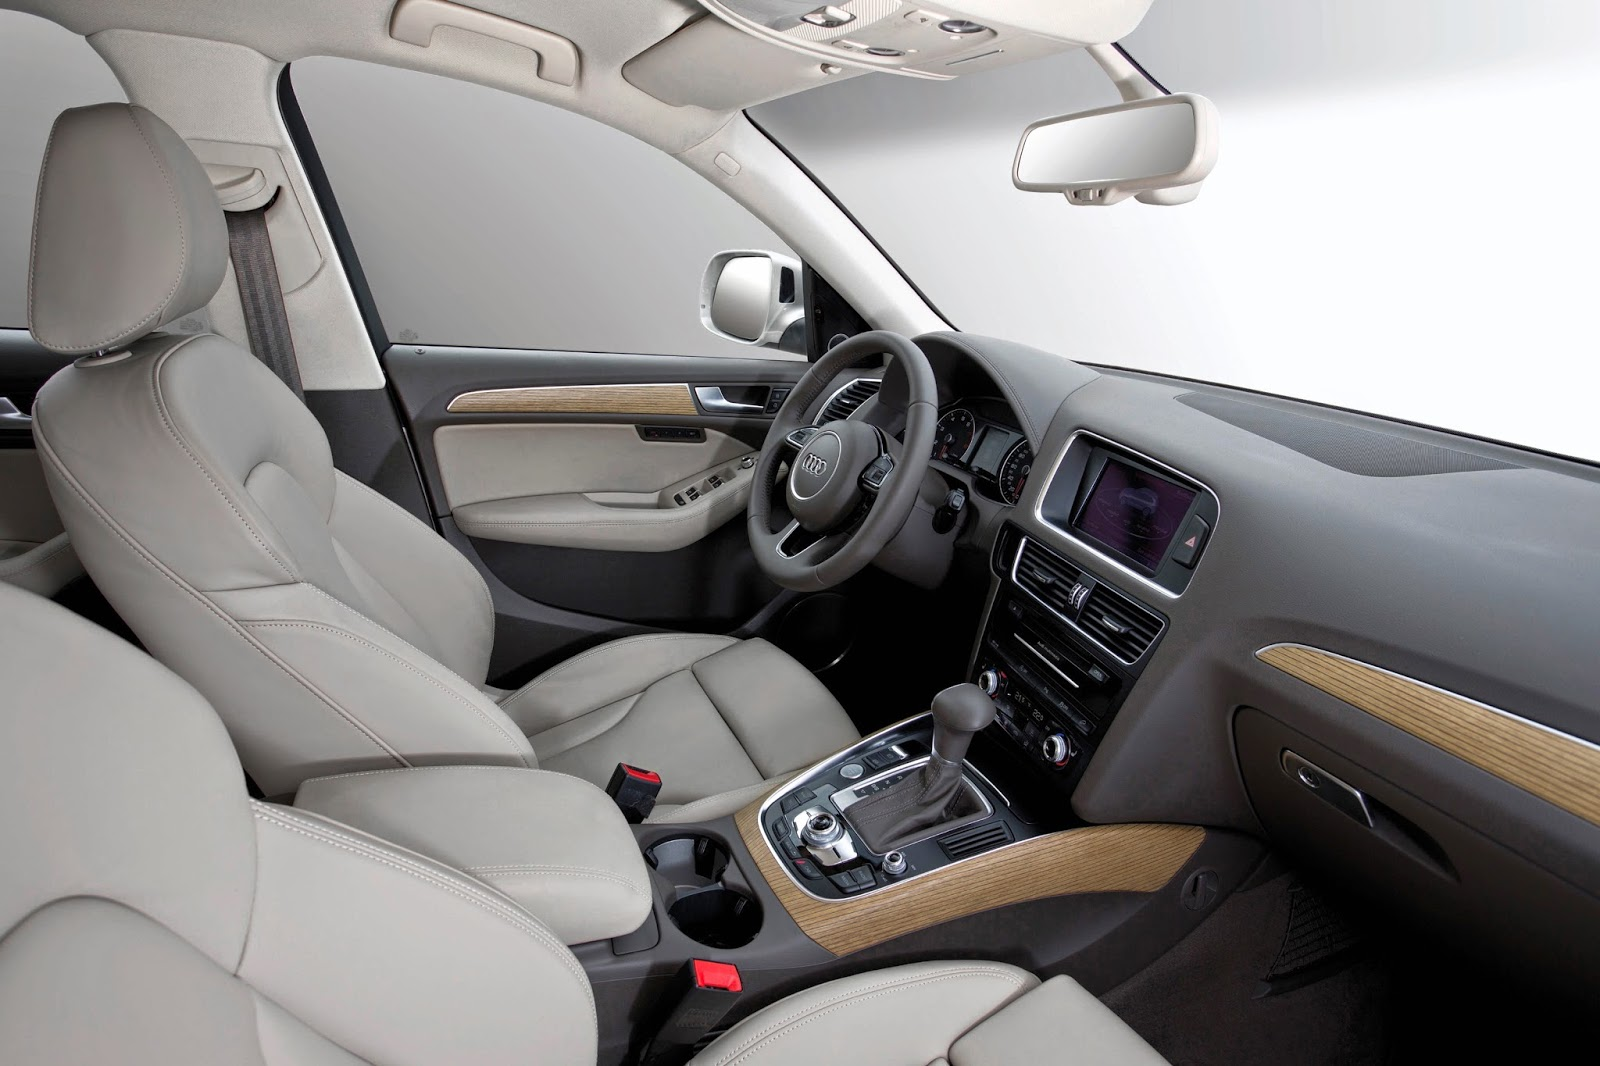 Interior view of 2015 Audi Q5